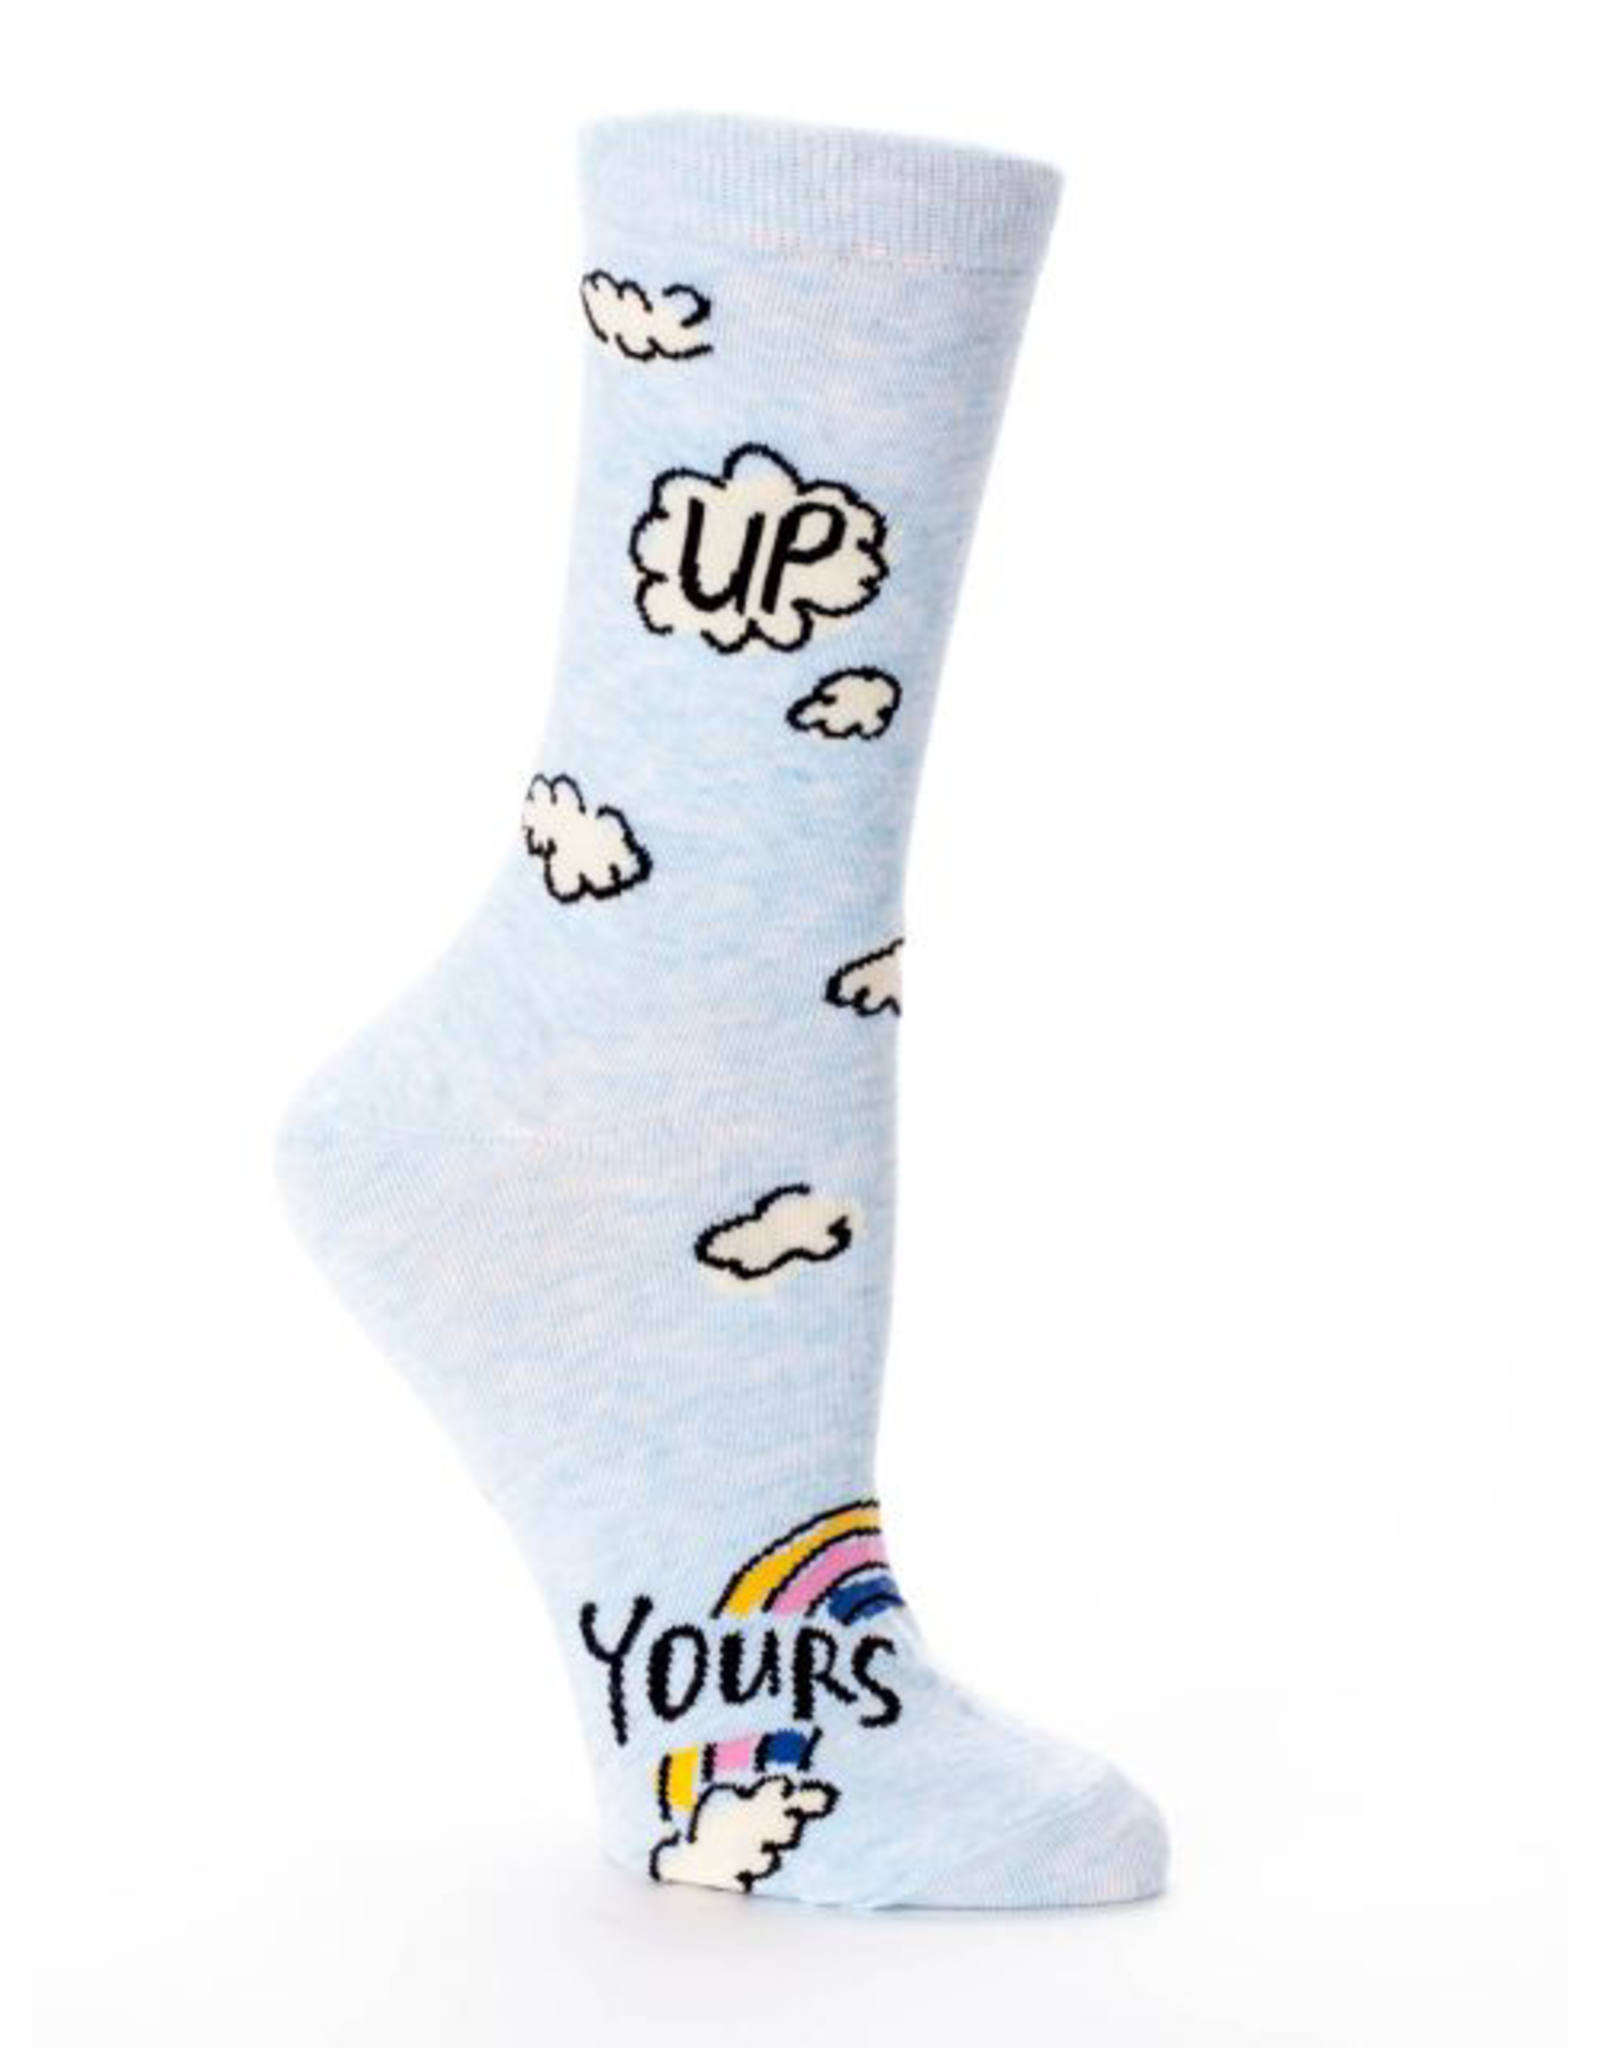 Socks (Womens) - Up Yours